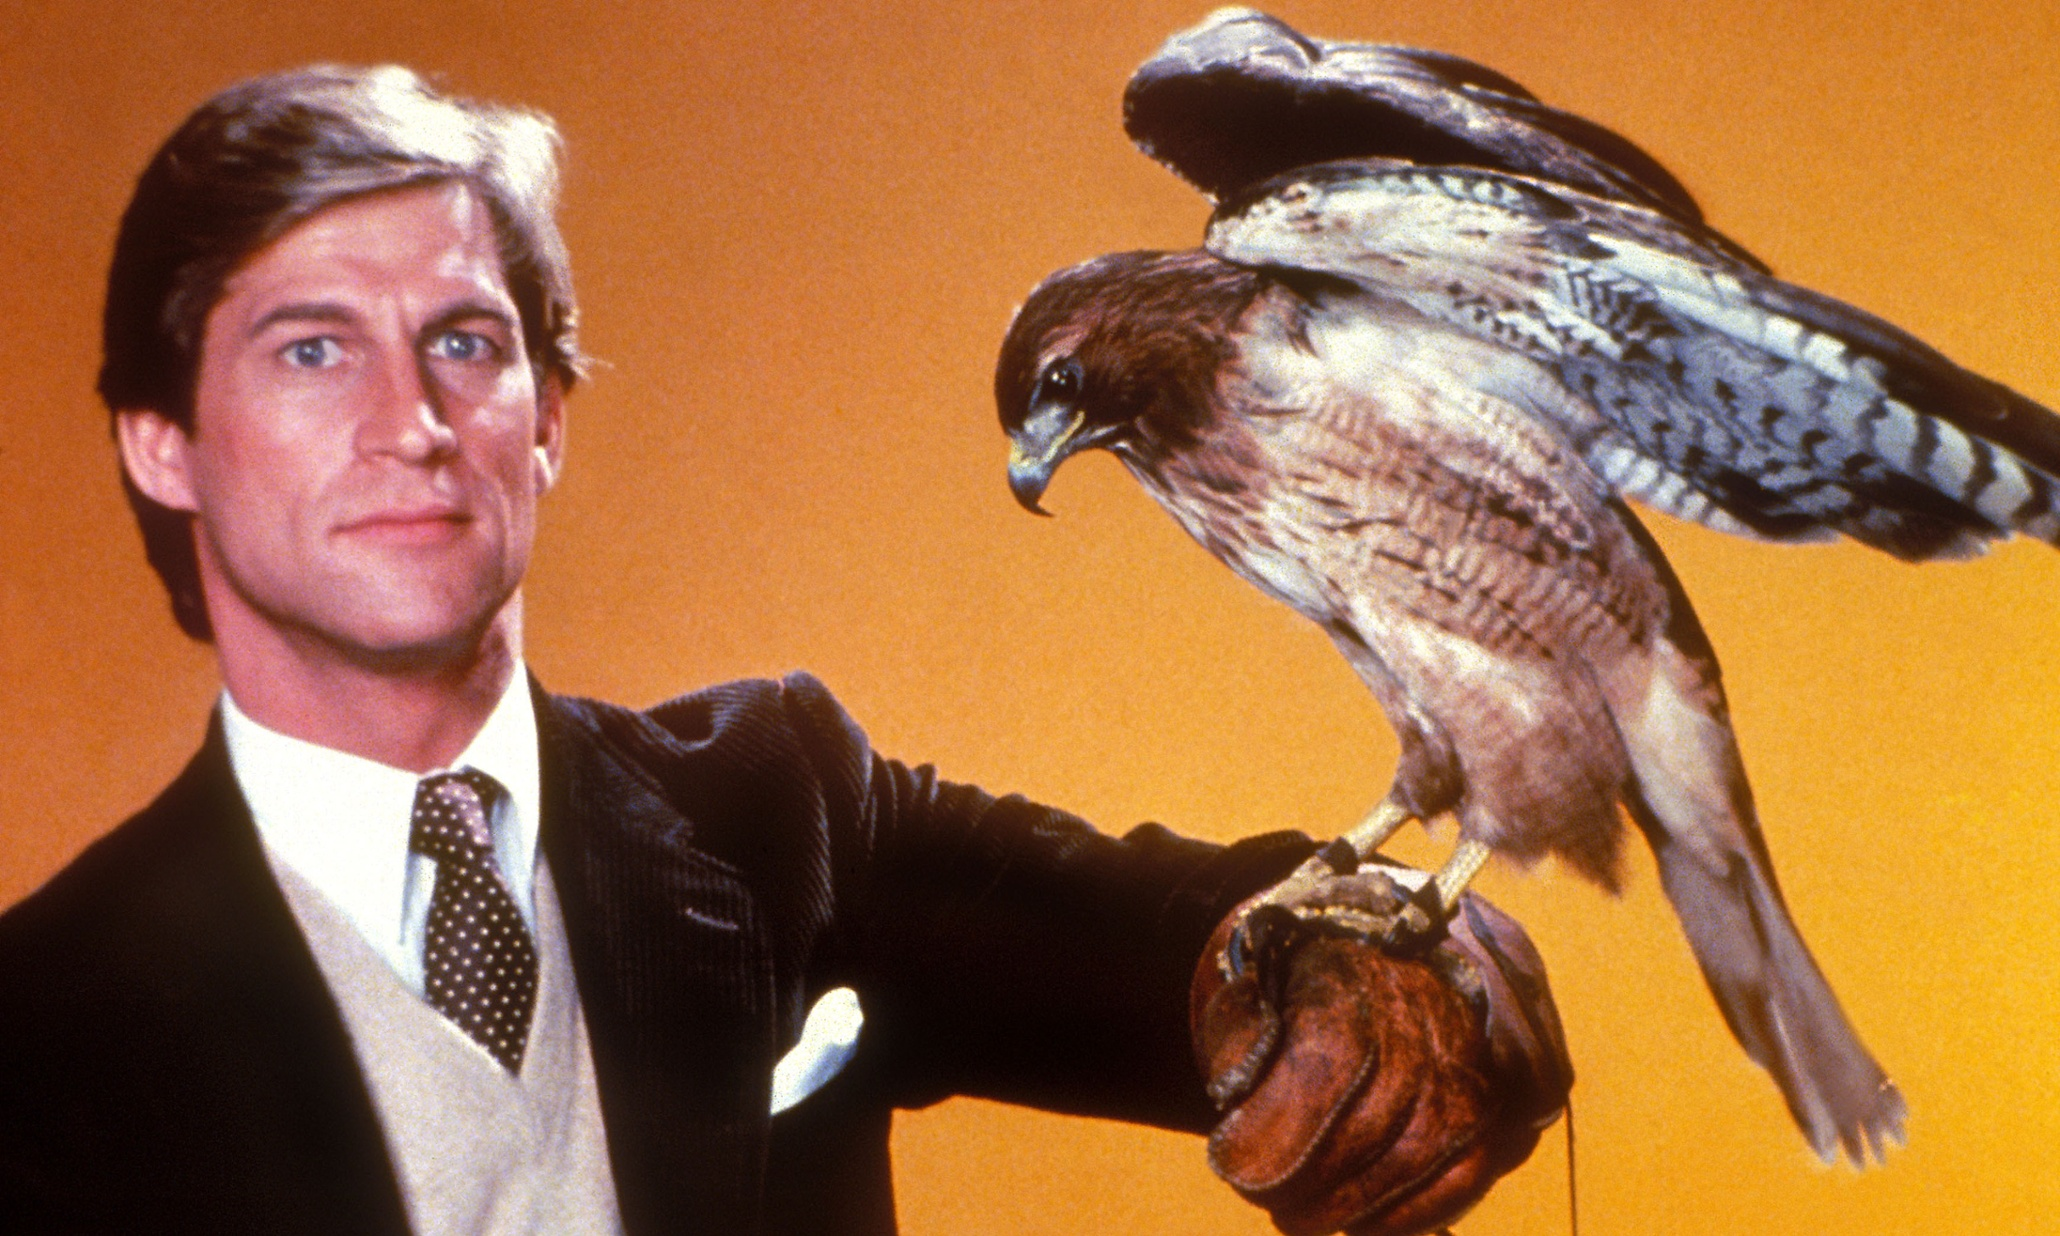 MANIMAL SURPRISES AT THE EMMYS